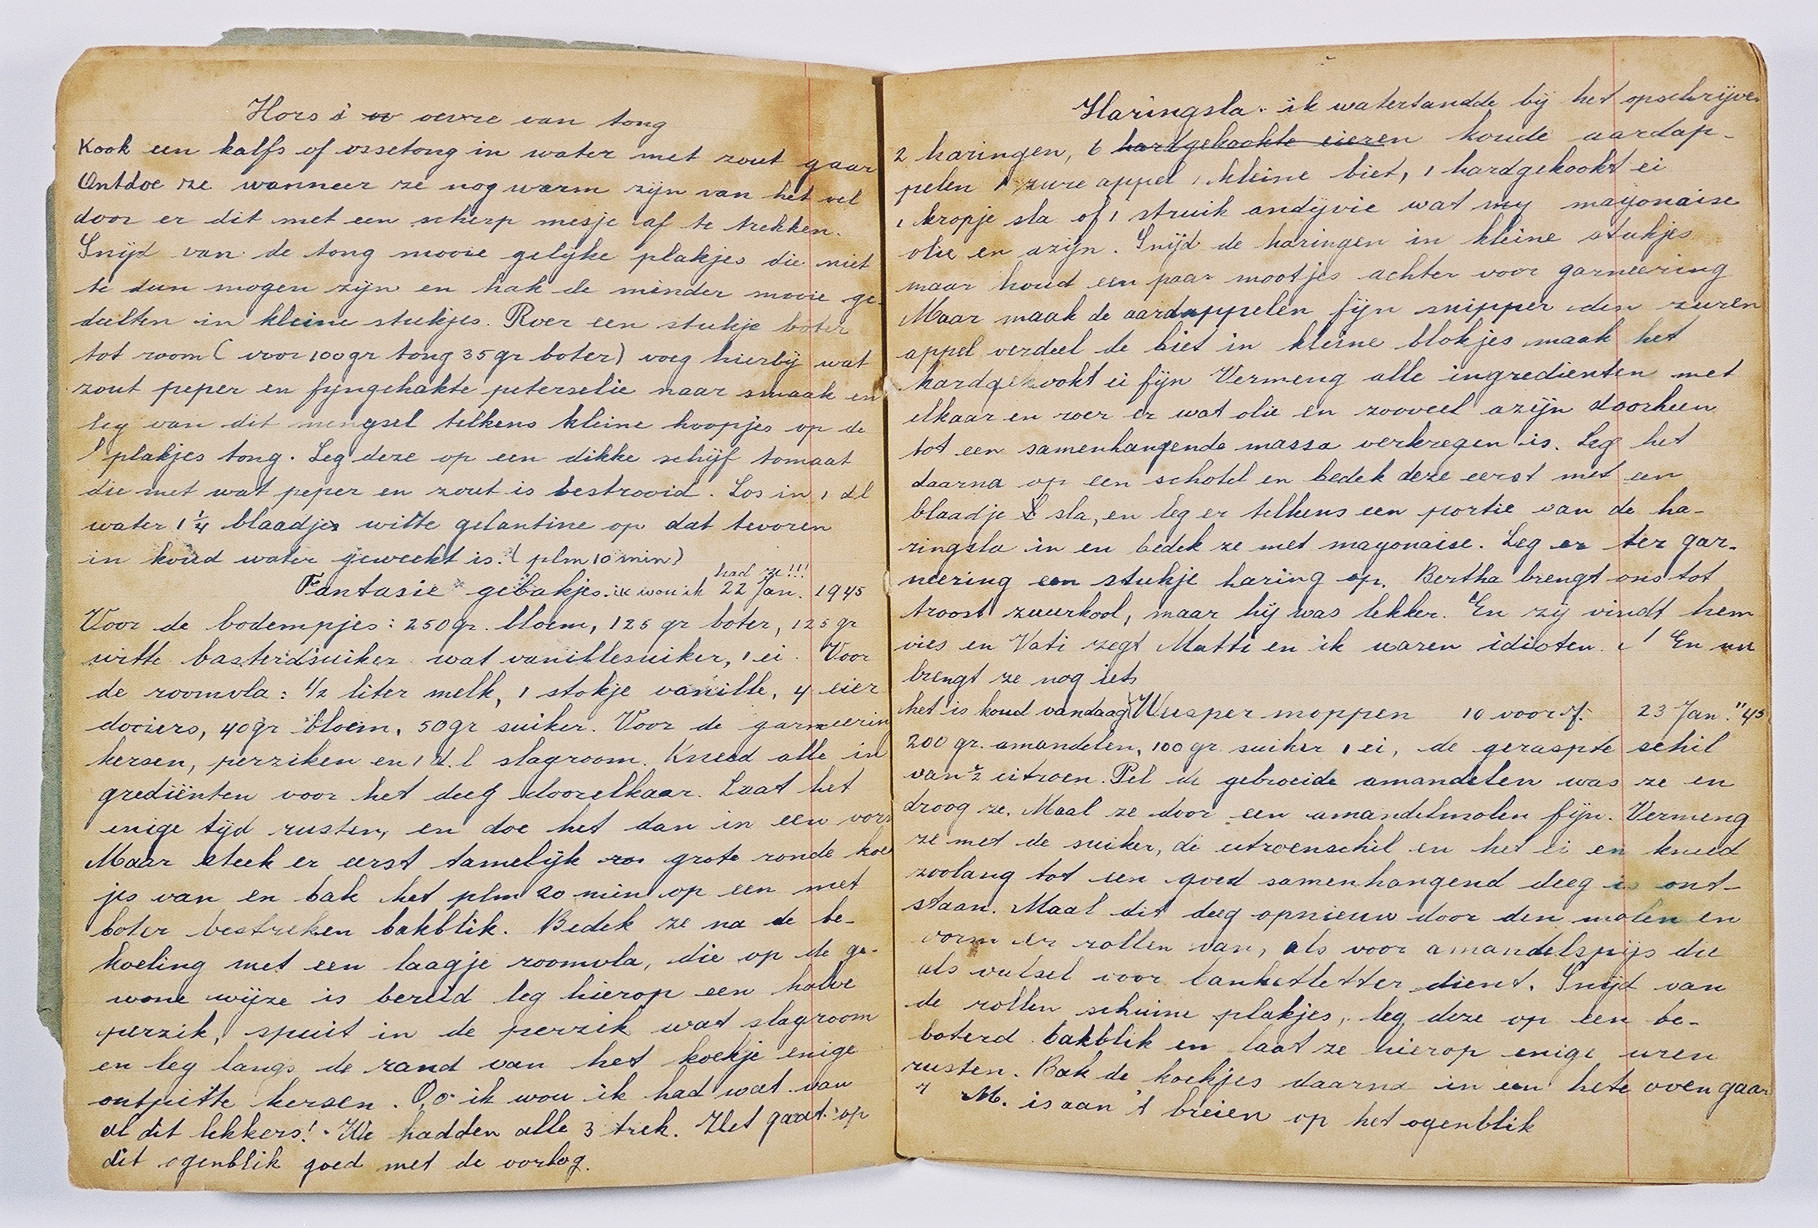 Pages from a diary written by Susie Grunbaum Schwarz while in hiding.  She disguised the diary in the form of a cookbook written in several languages.